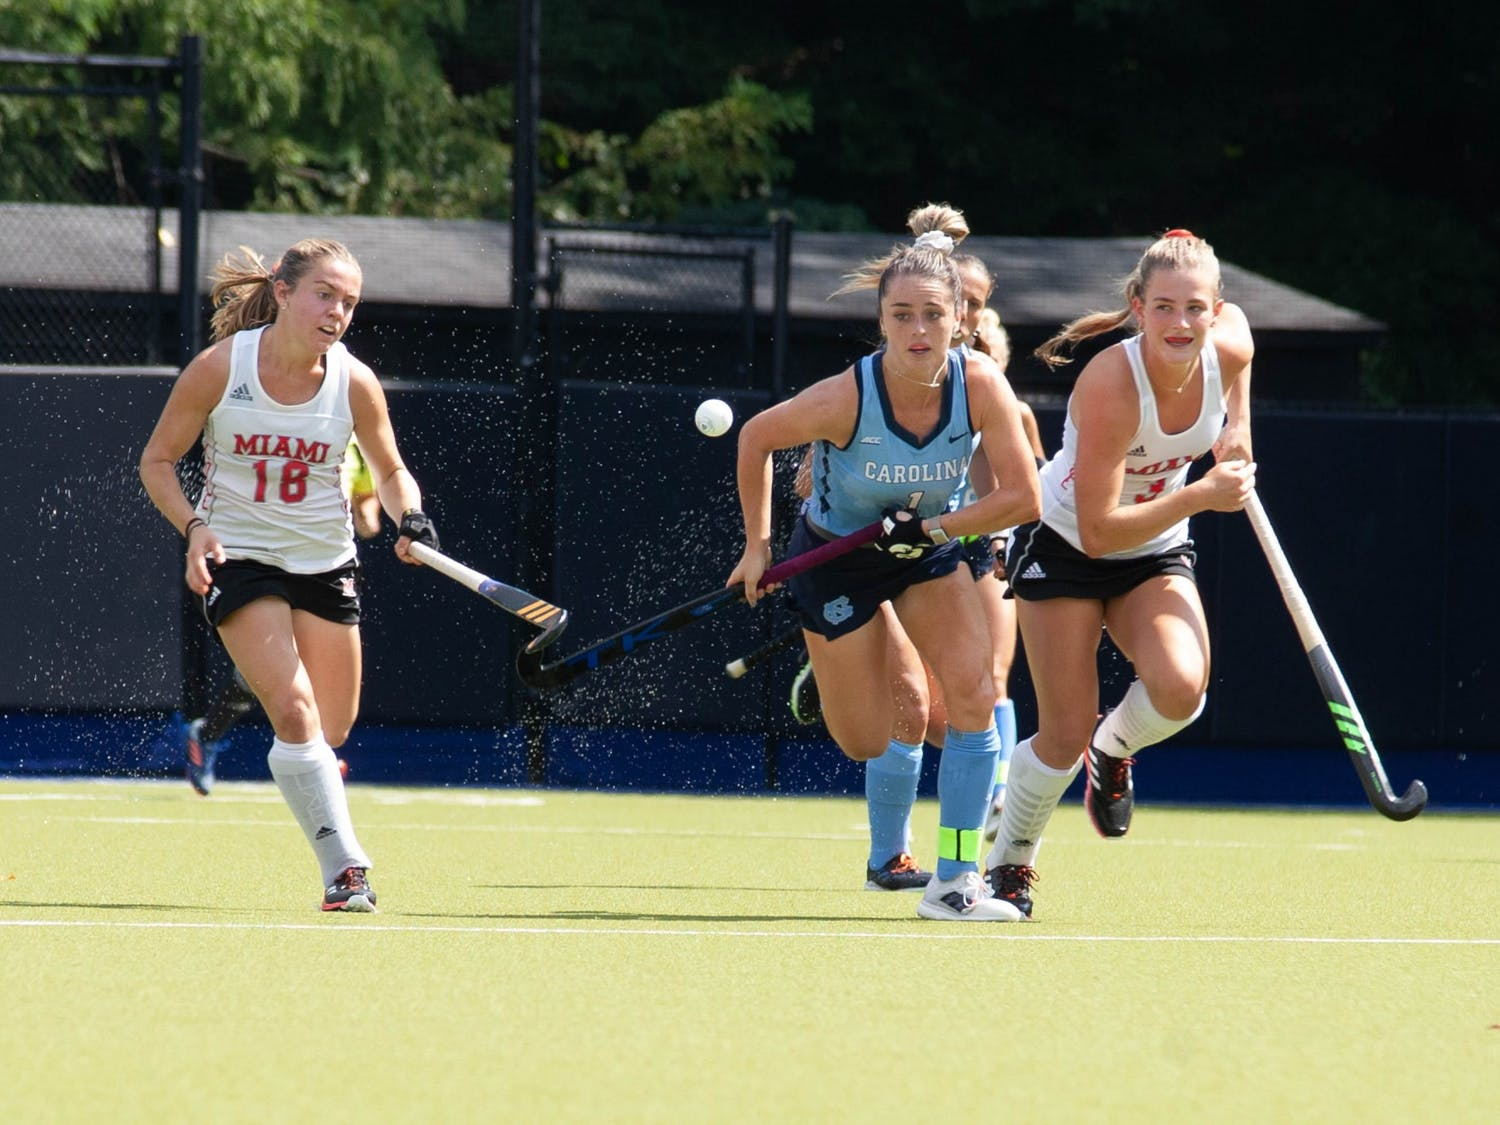 UNC senior forward Erin Matson (1) gains possession of the ball during the field hockey game against the Miami Redhawks at Karen Shelton Stadium on Sept. 19, 2021. The Tar Heels defeated the Redhawks 7-2.